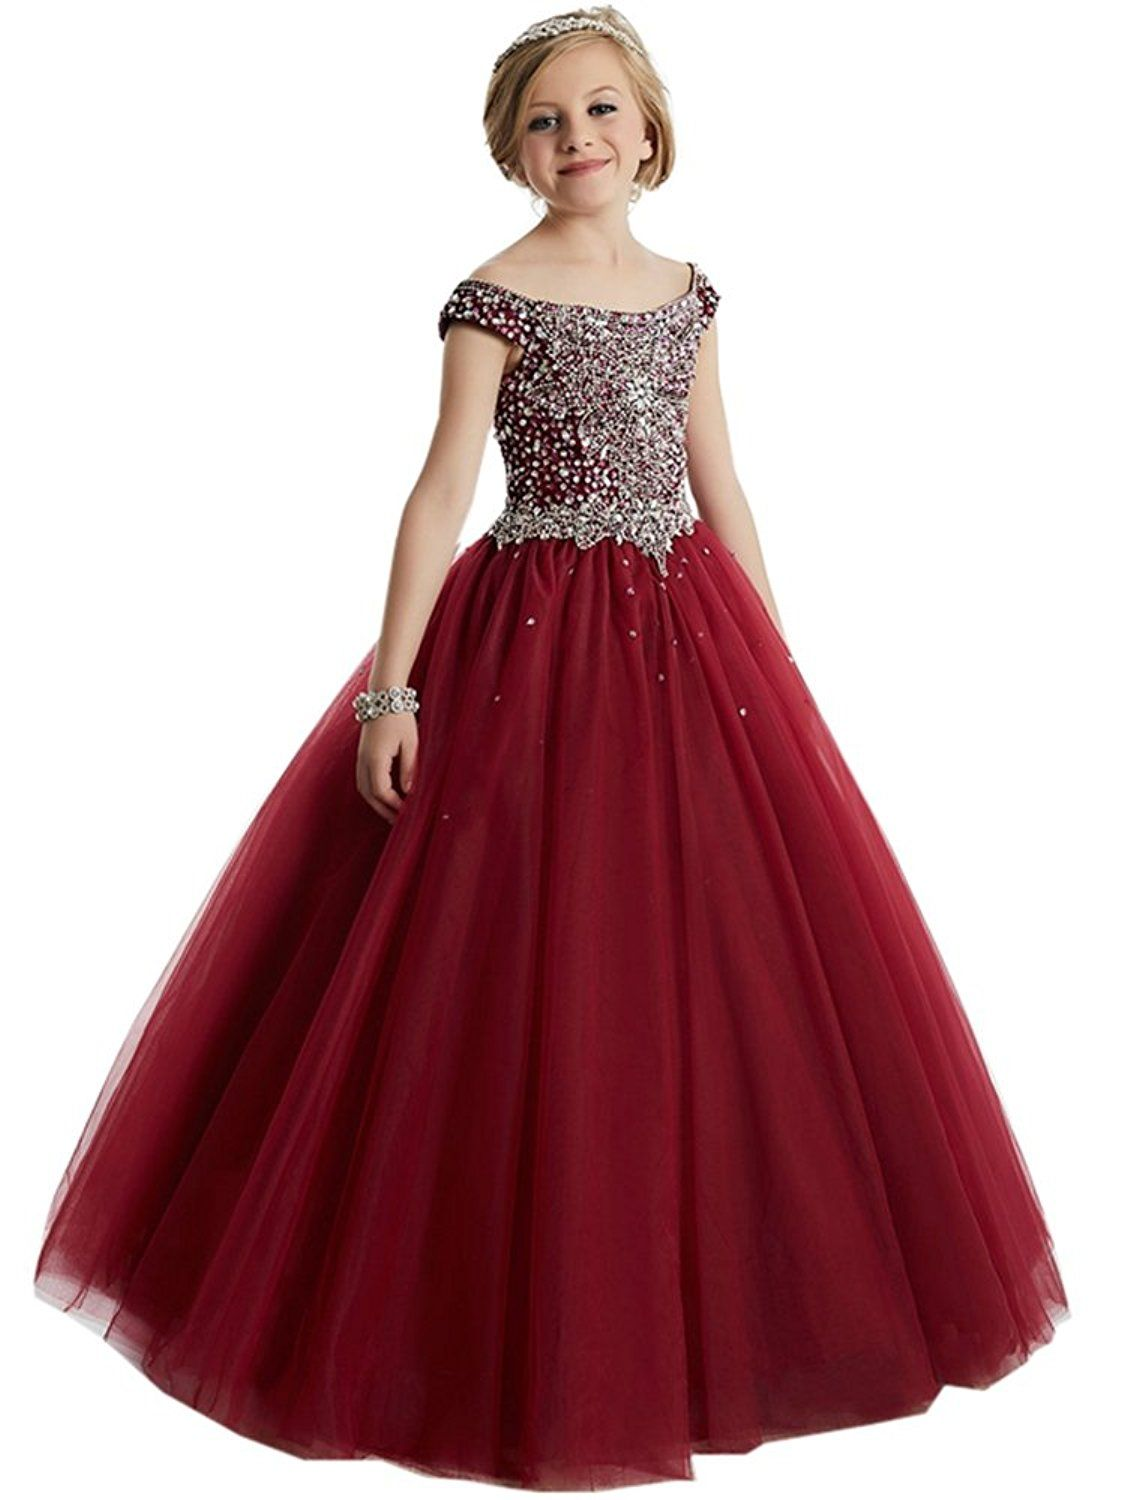 The Most Beautiful wedding party dresses for kids Baby